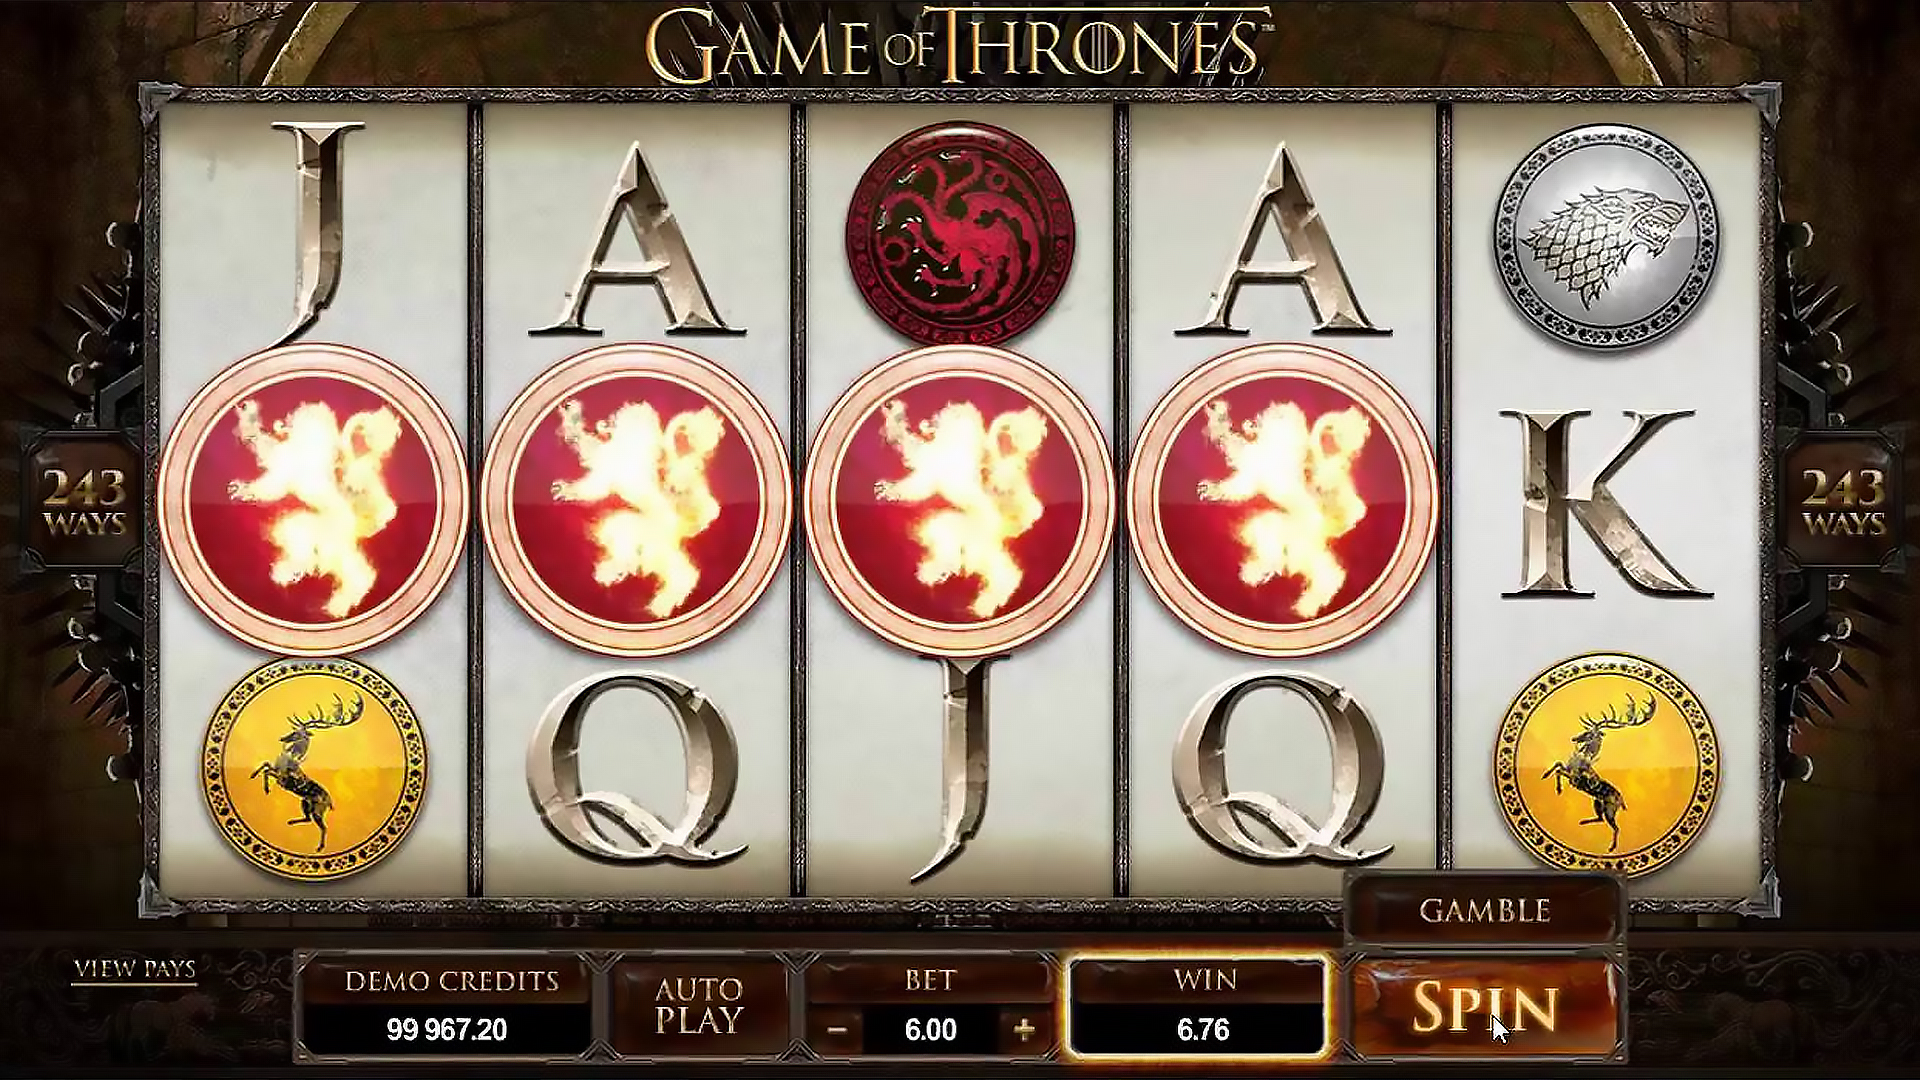 Game of Thrones from Microgaming